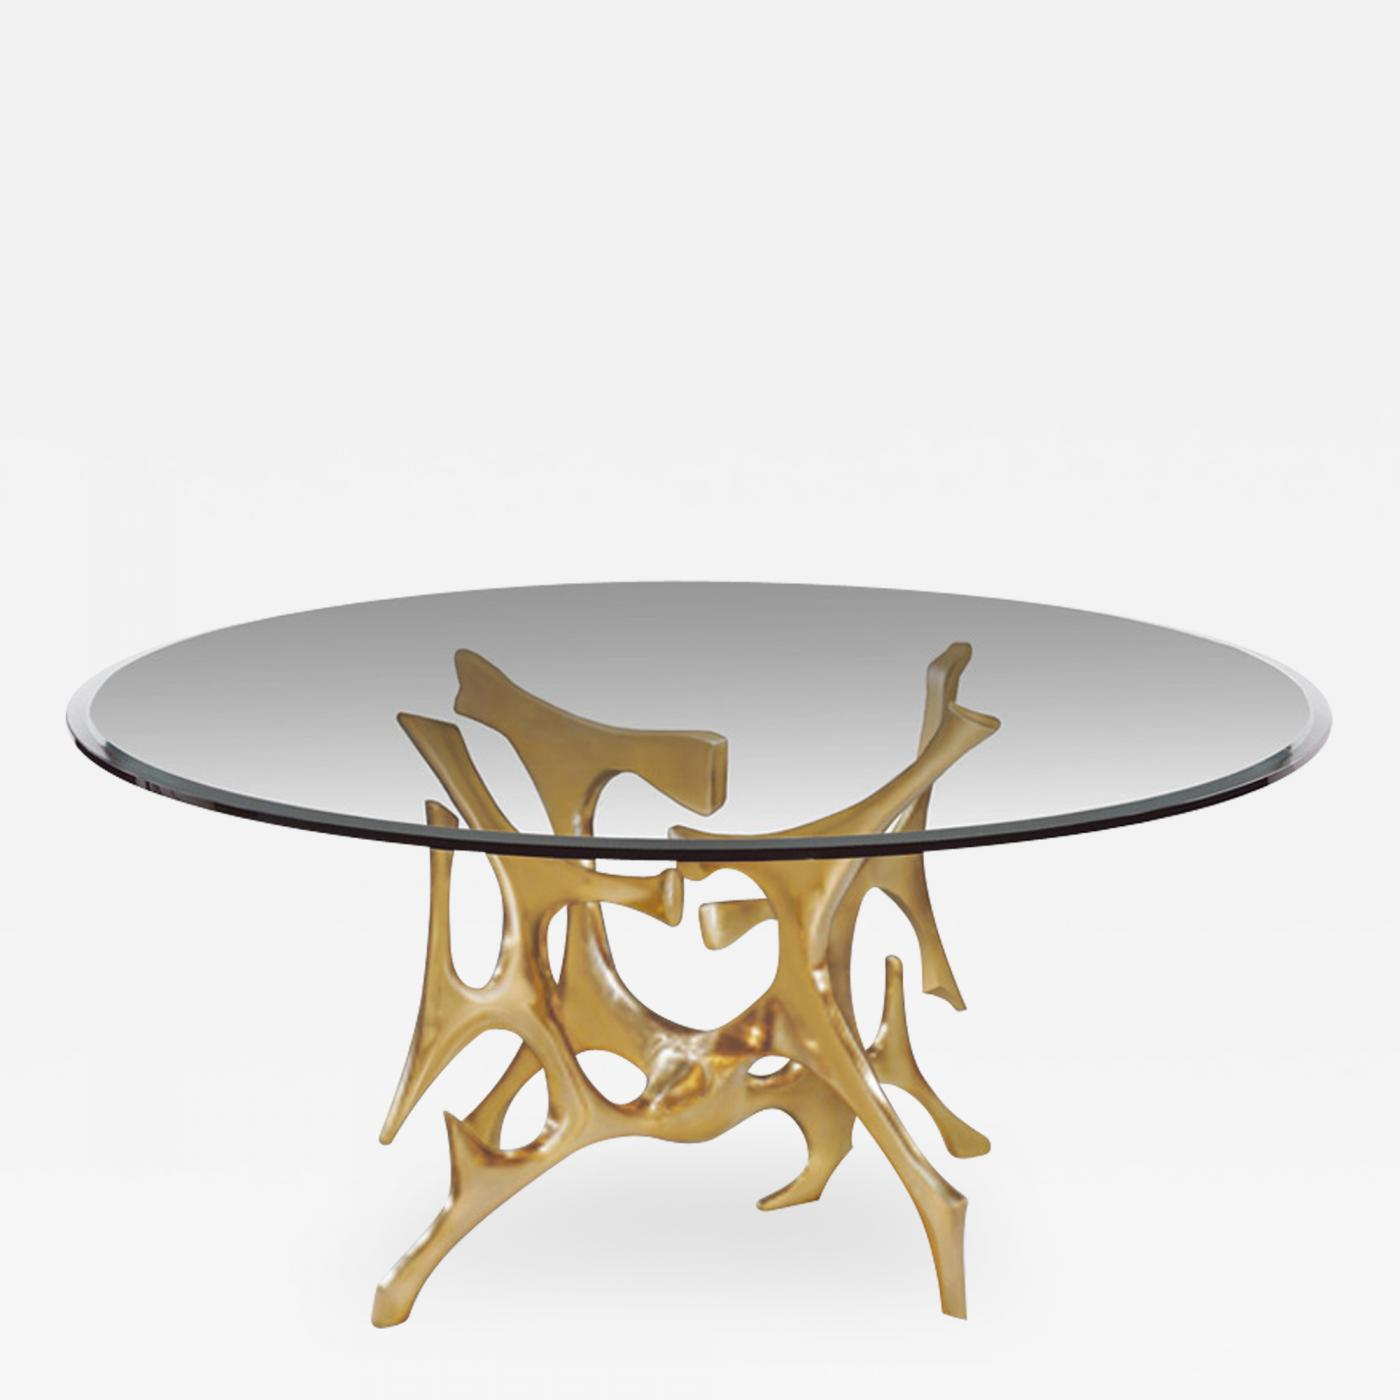 Fred Brouard Signed Fred Brouard Abstract Gilt Bronze Dining Table Base 1970s